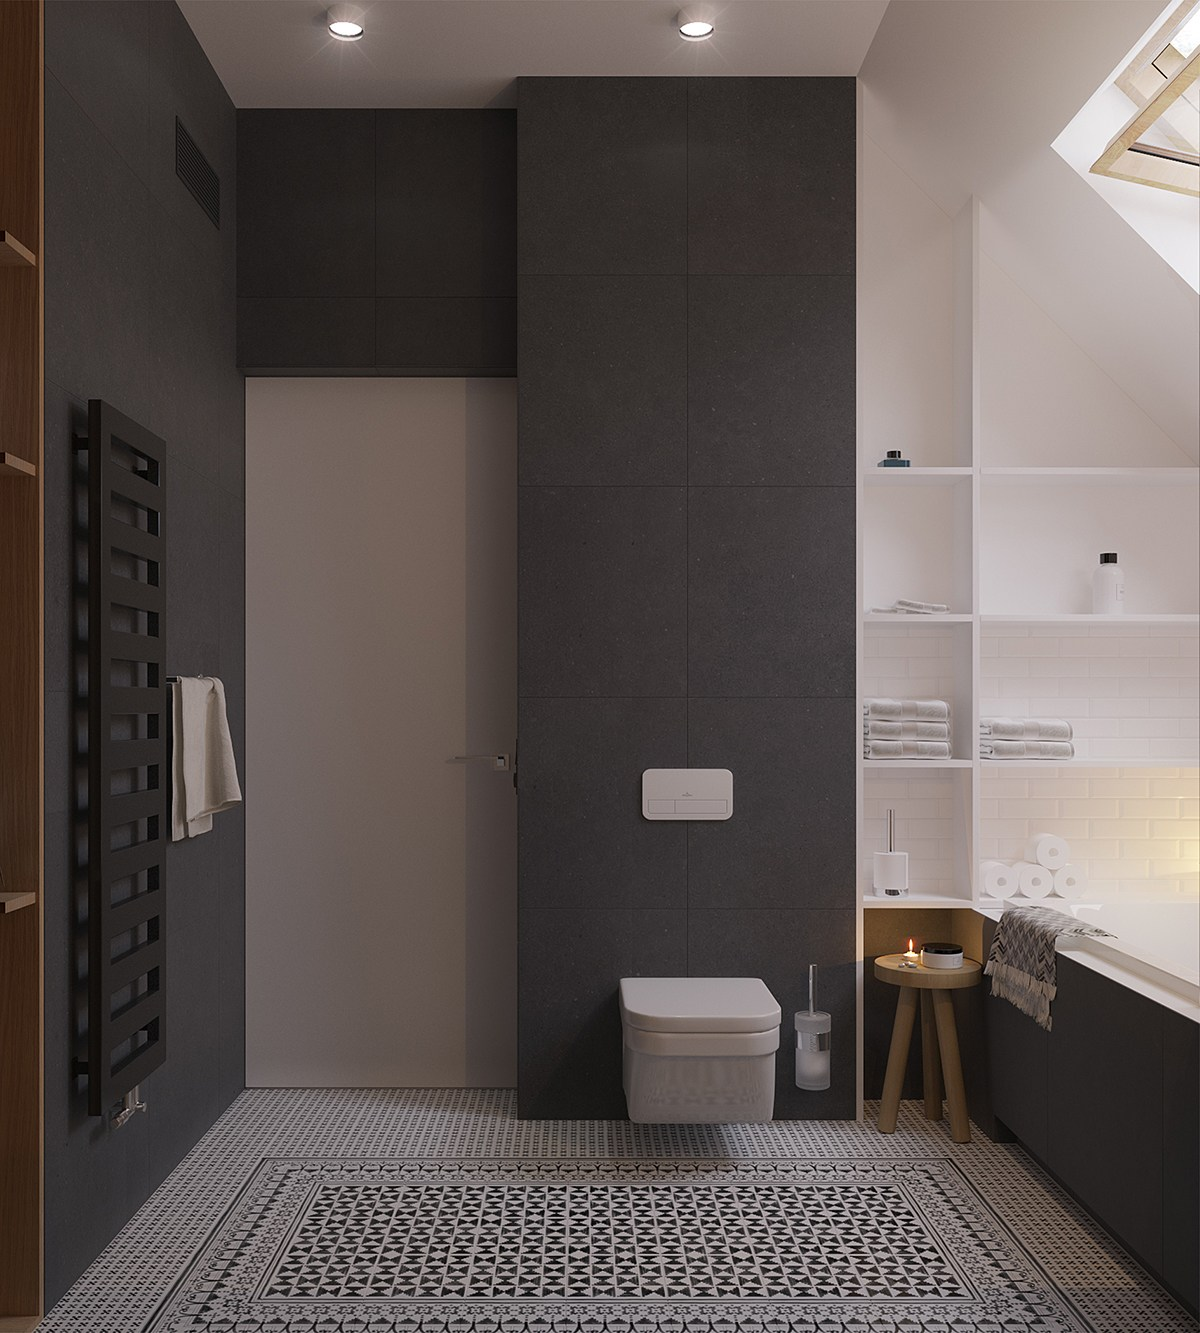 A sleek and surprising interior inspired by scandinavian - Bagno moderno piccolo ...